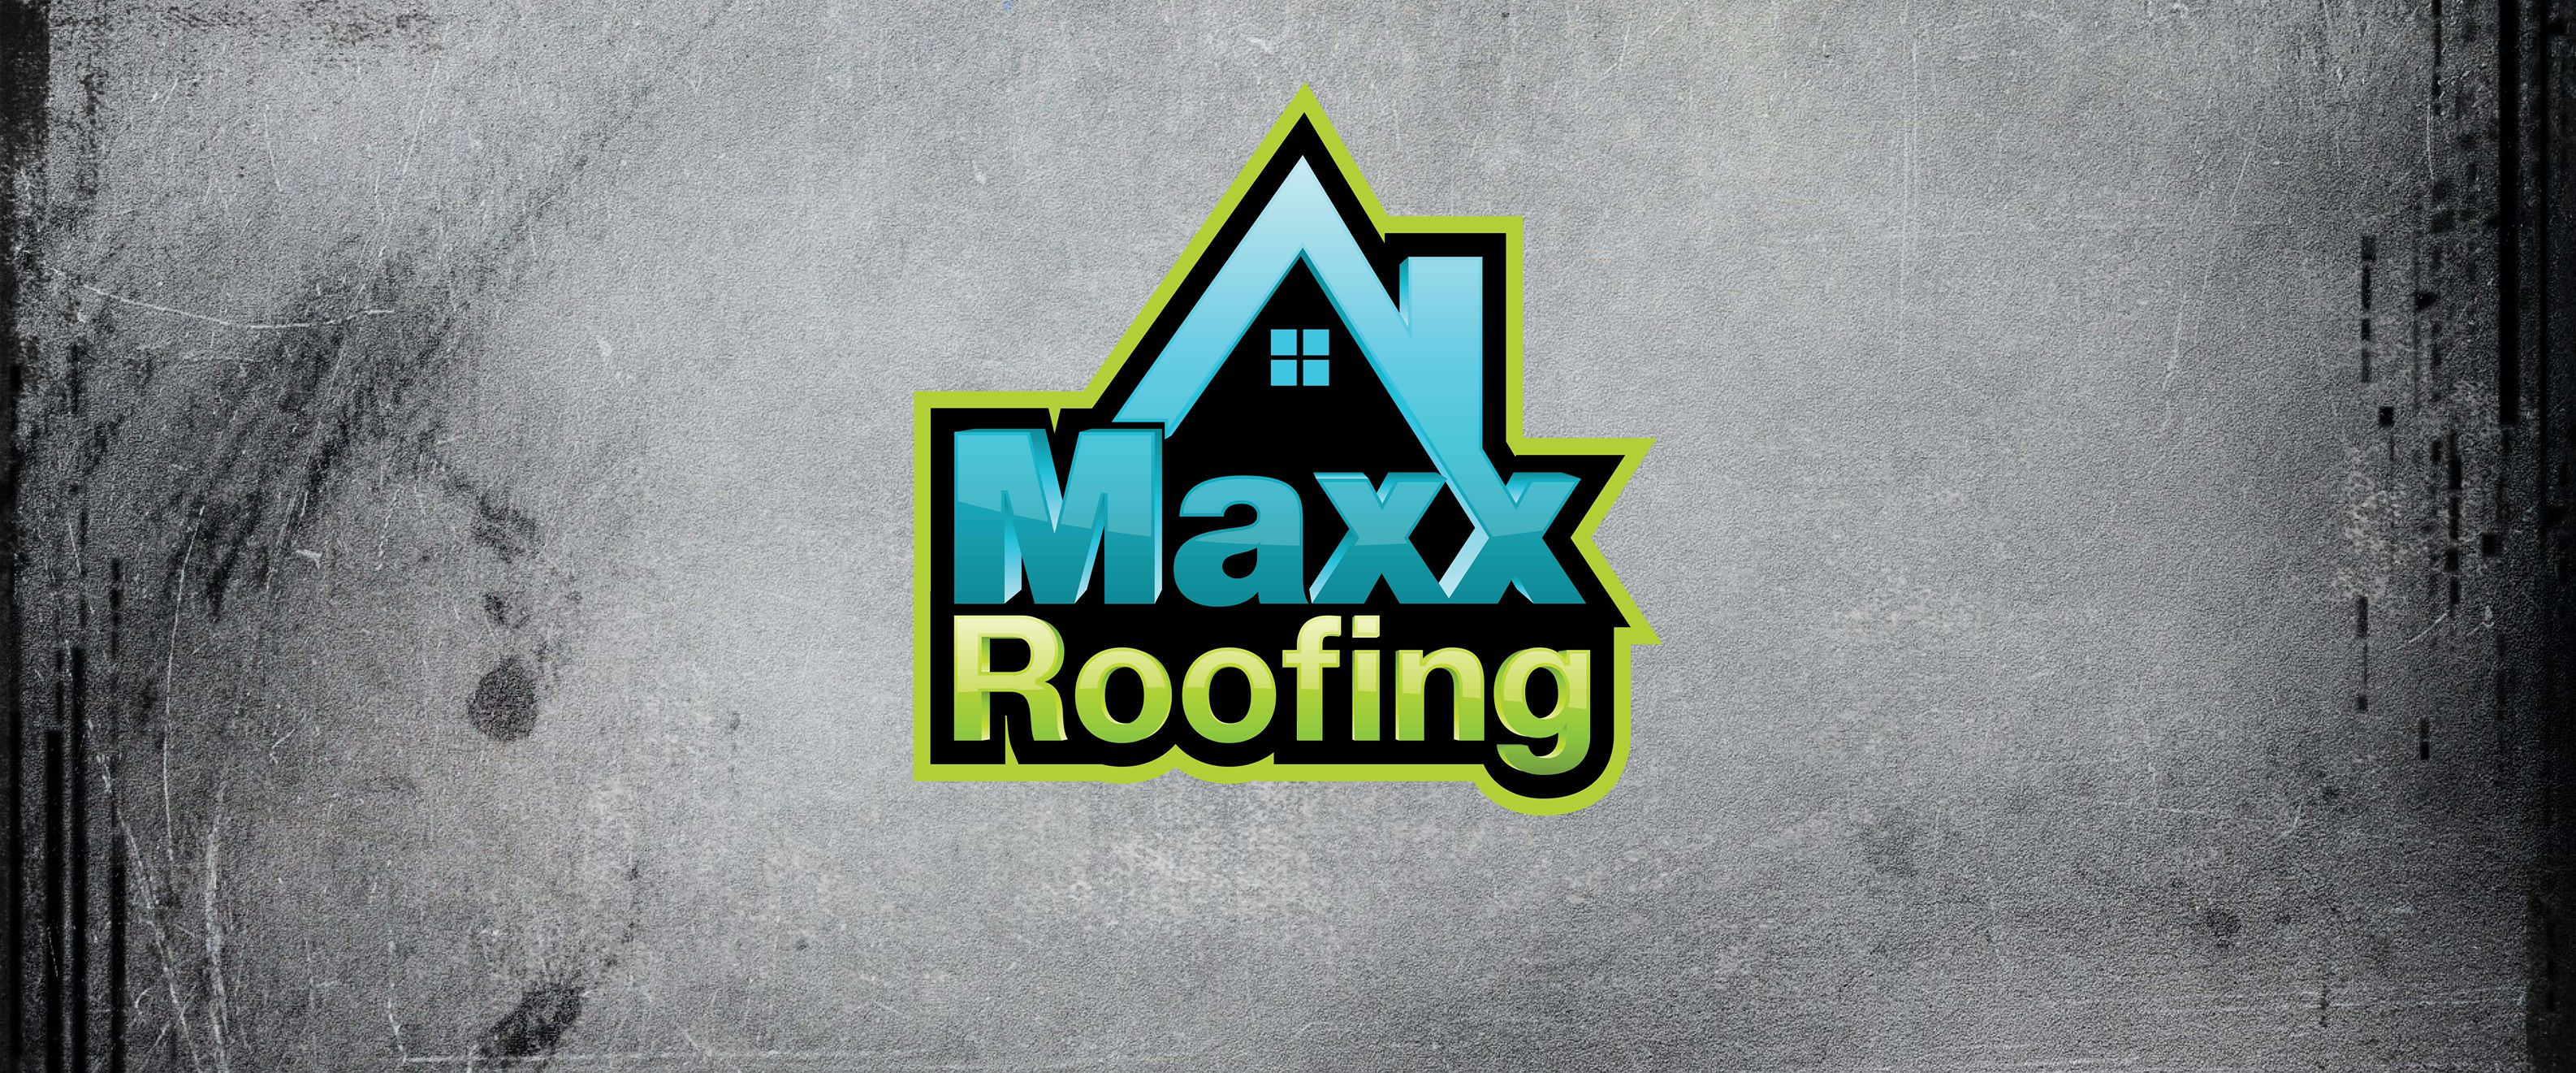 Maxx Roofing reviews | 2013 S Elm Pl - Broken Arrow OK